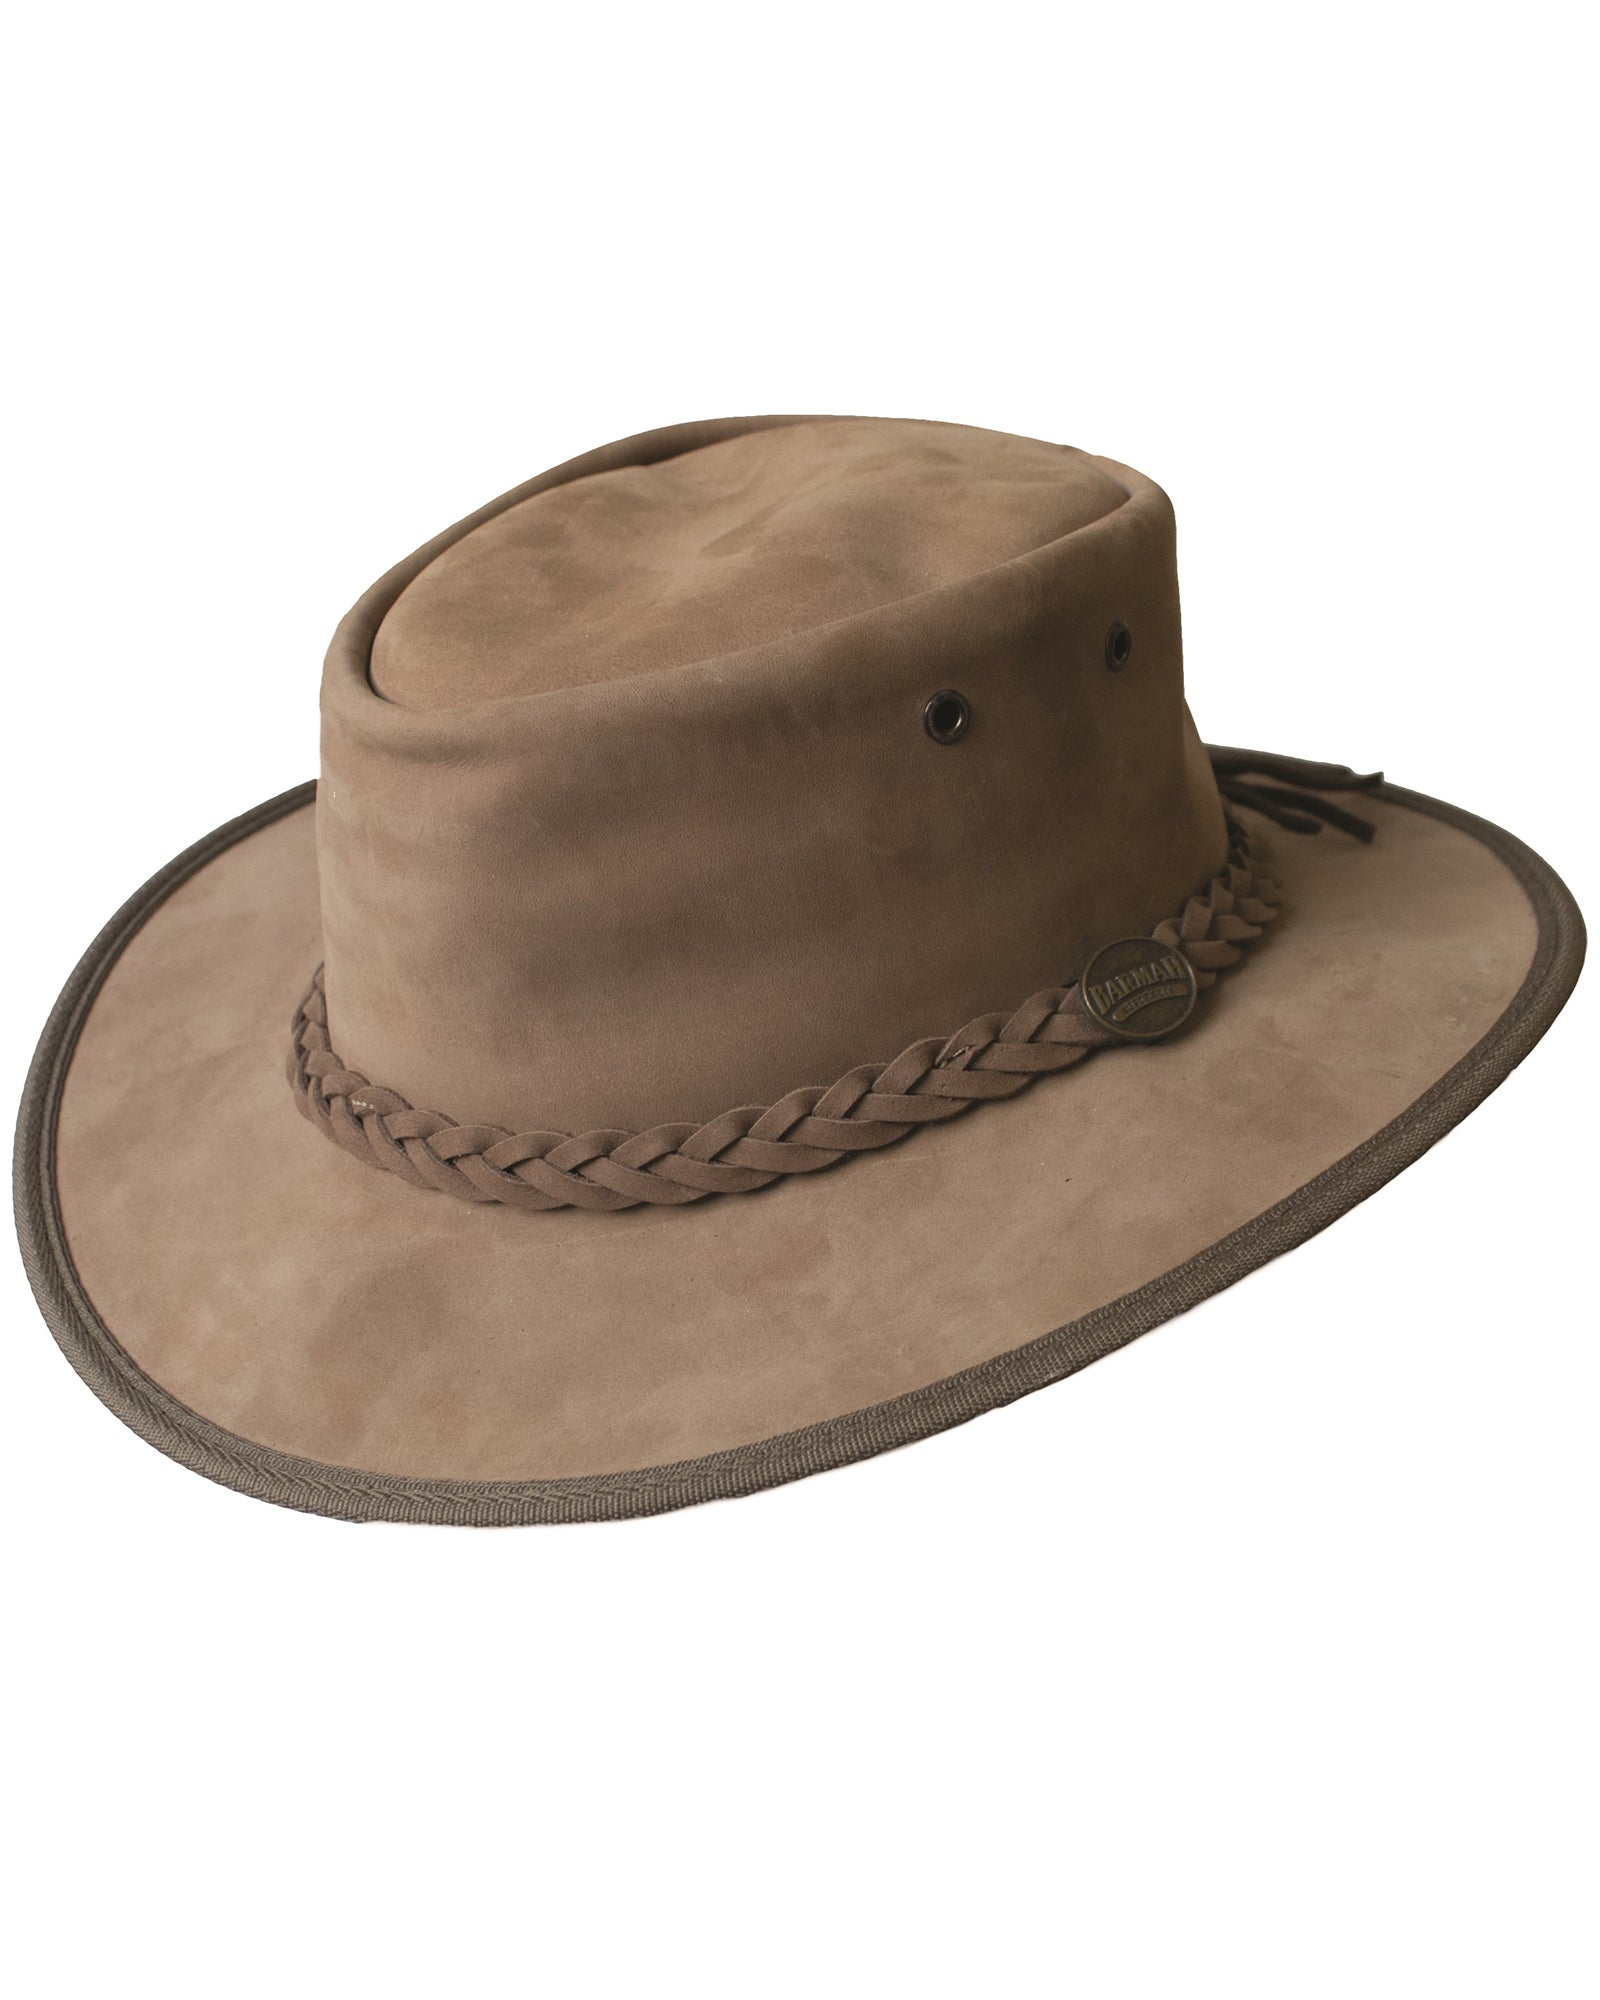 Barmah Crushable Bronco Leather Hat - Hickory